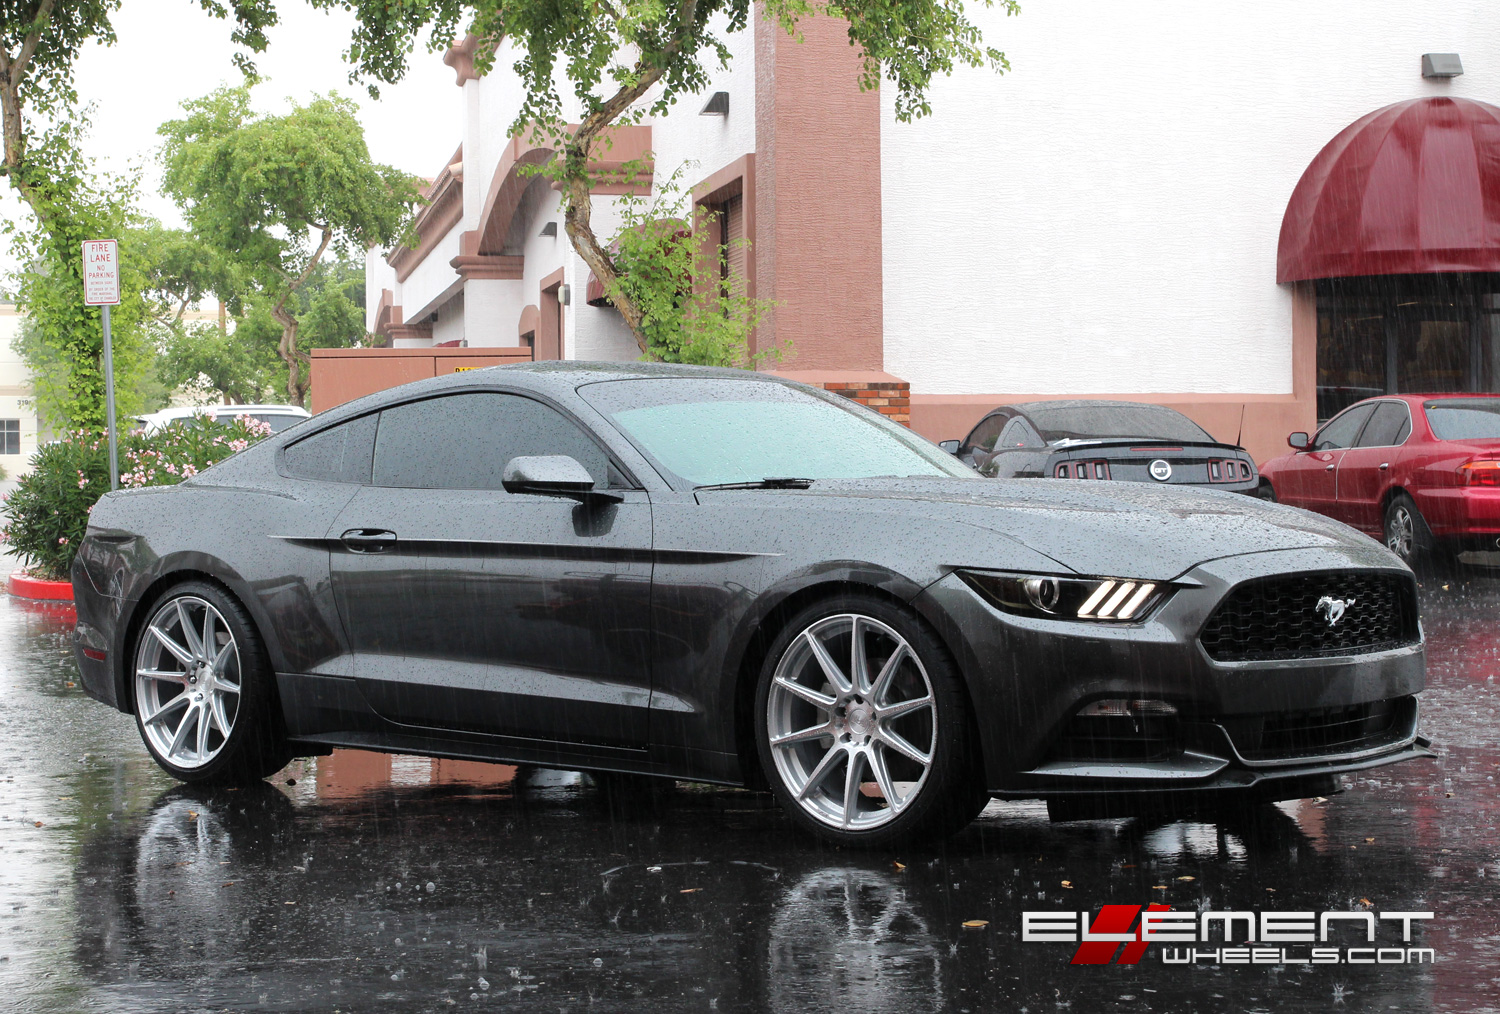 2015 Mustang 20 Inch Wheels >> 20 inch Staggered Niche Essen Wheels on 2015 Ford Mustang